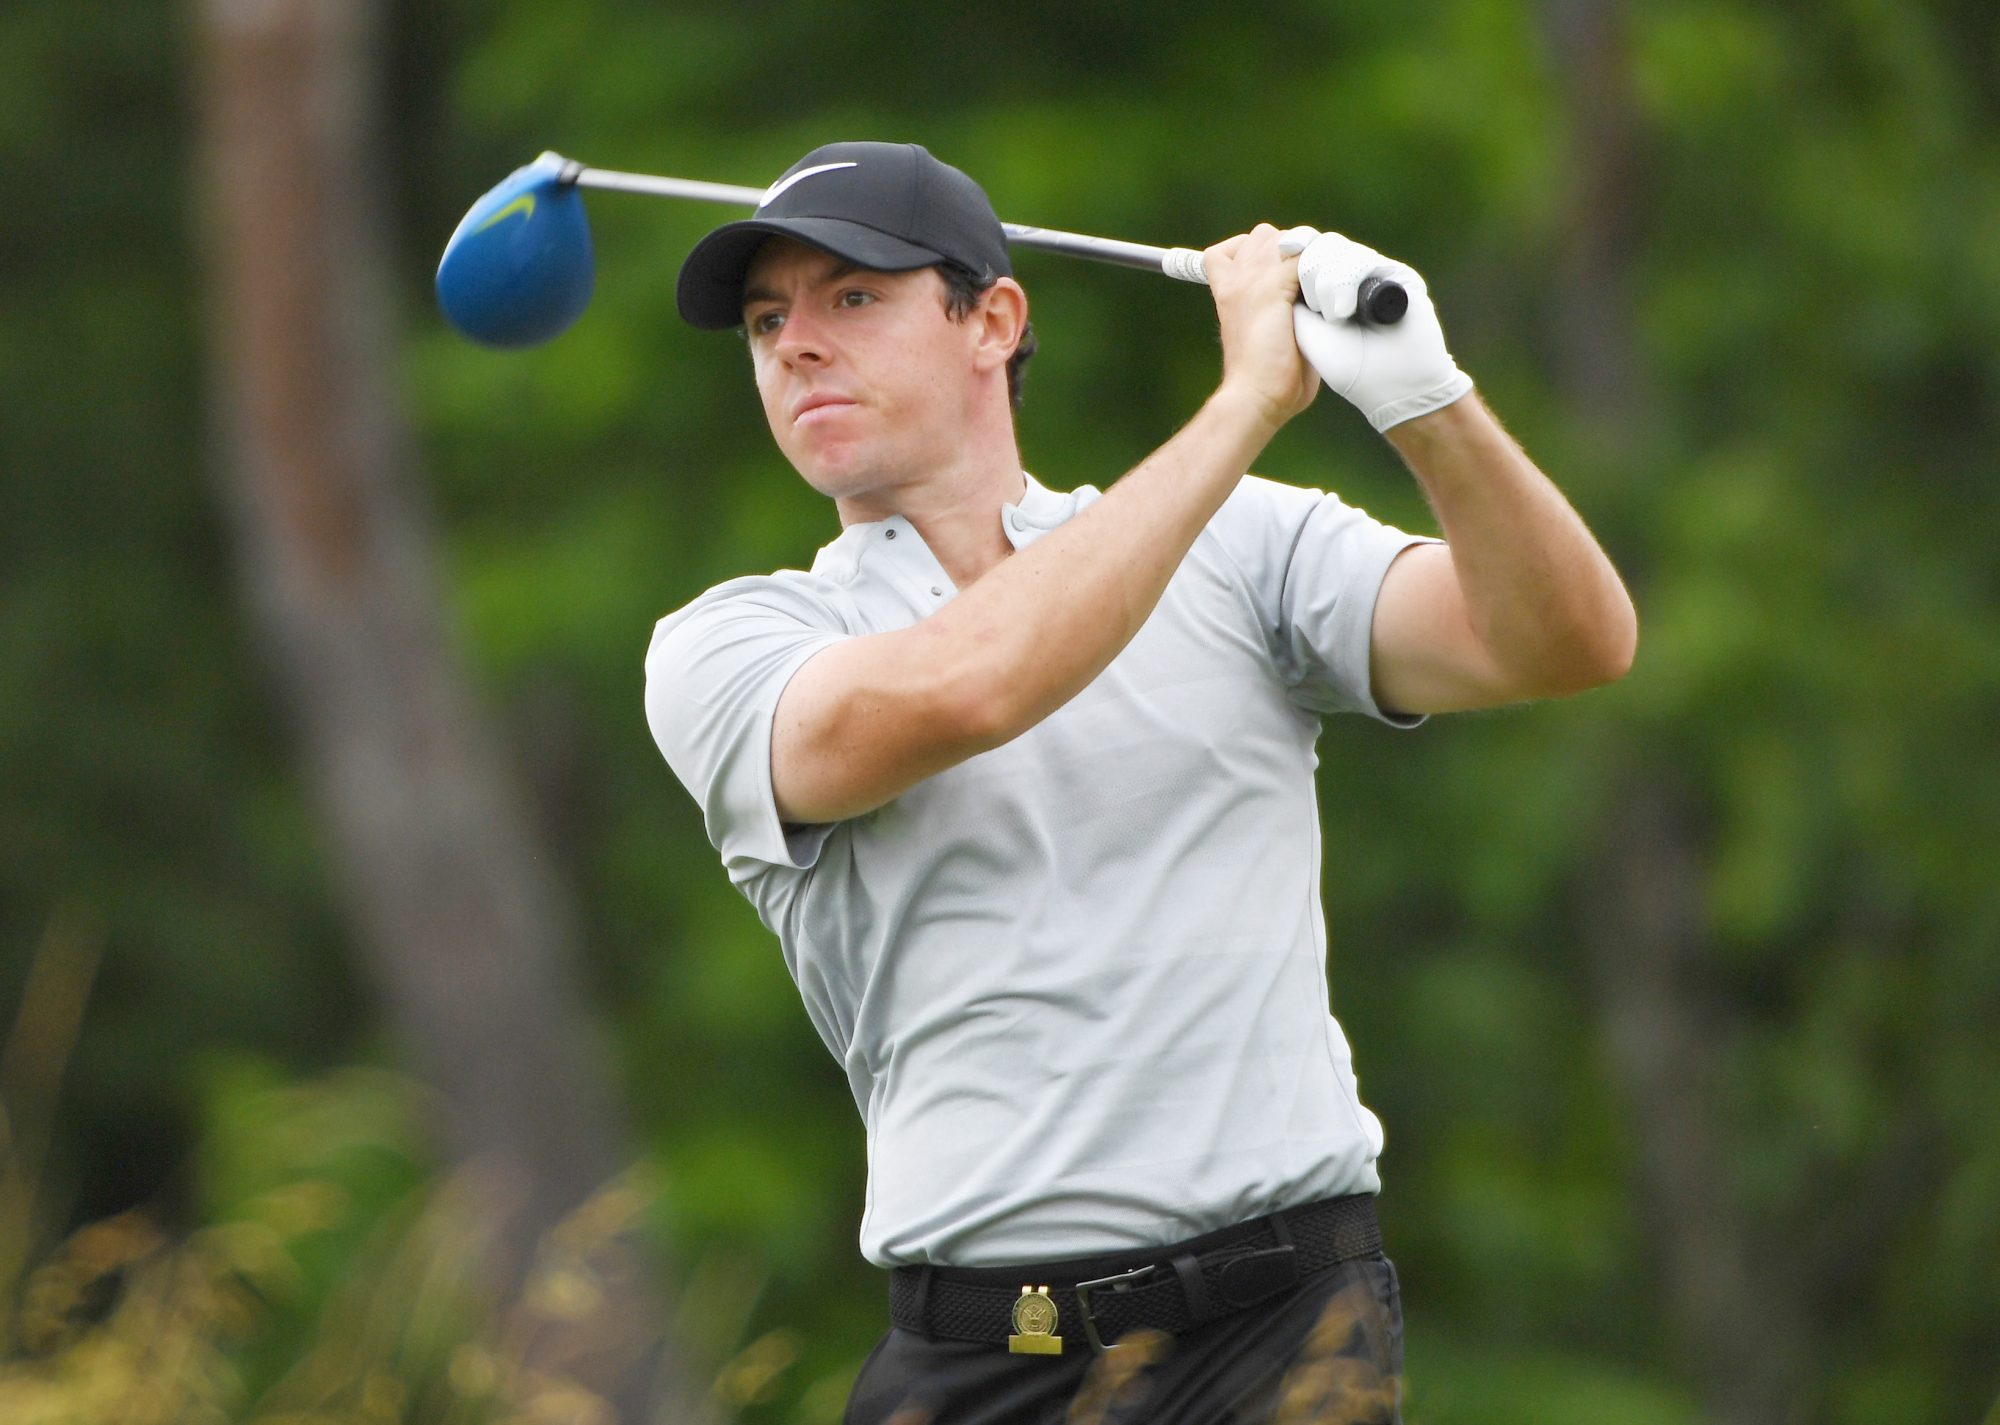 Rory McIlroy Is the Latest Athlete to Drop Out of Olympics Amid Zika Fears